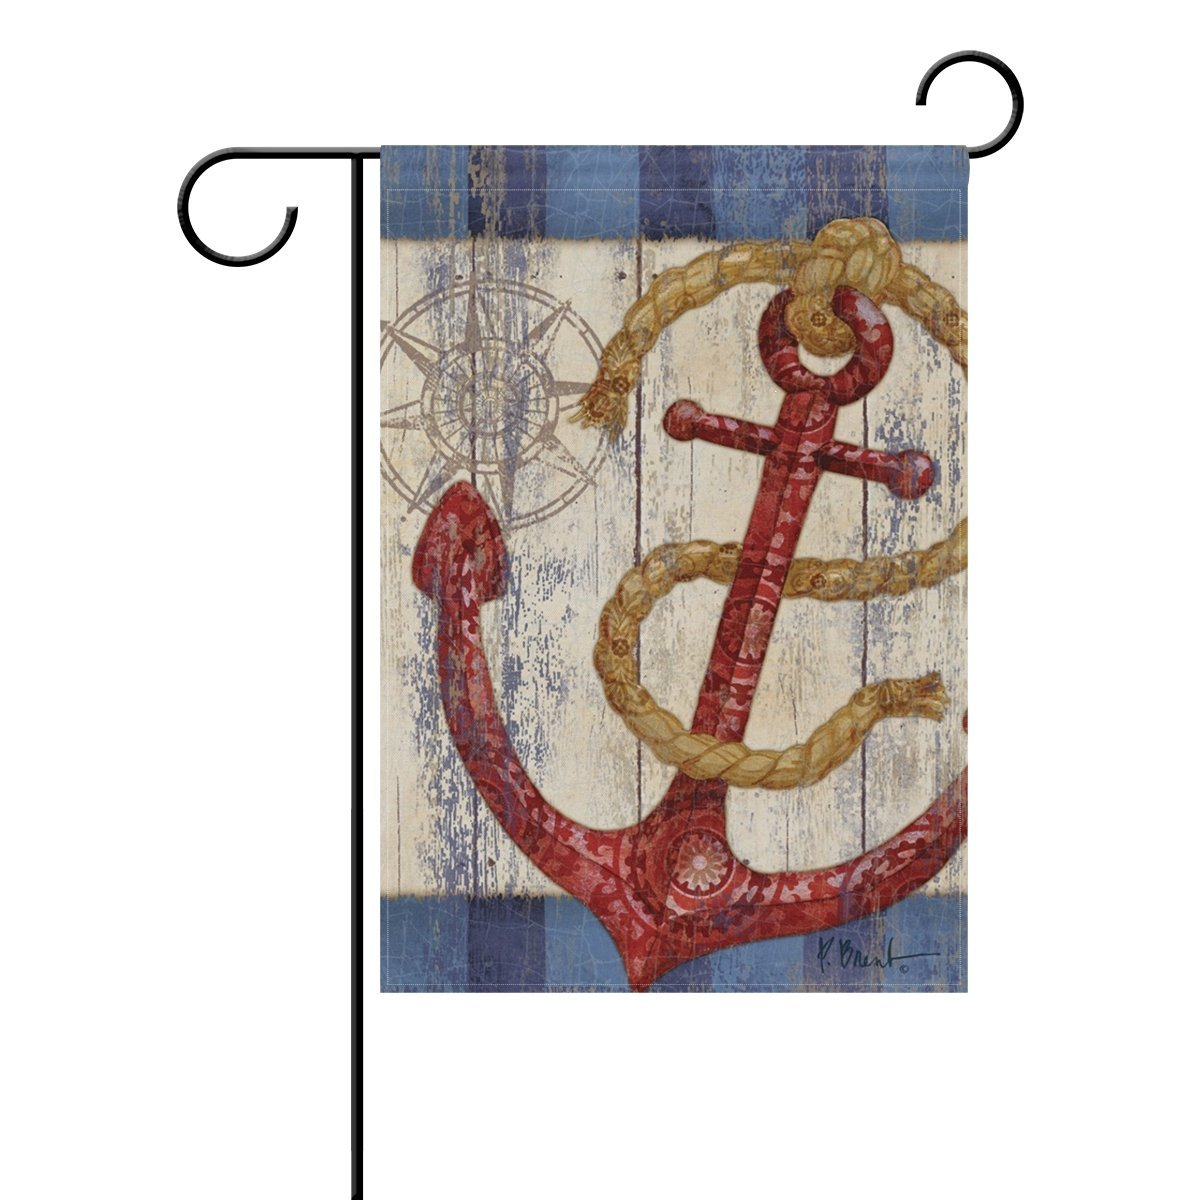 senya Double Sided Yard Garden Flag, Wood Nautical Anchor Decor Home House Outdoor Flags, Graduation Decorations Gifts, 28'' x 40''